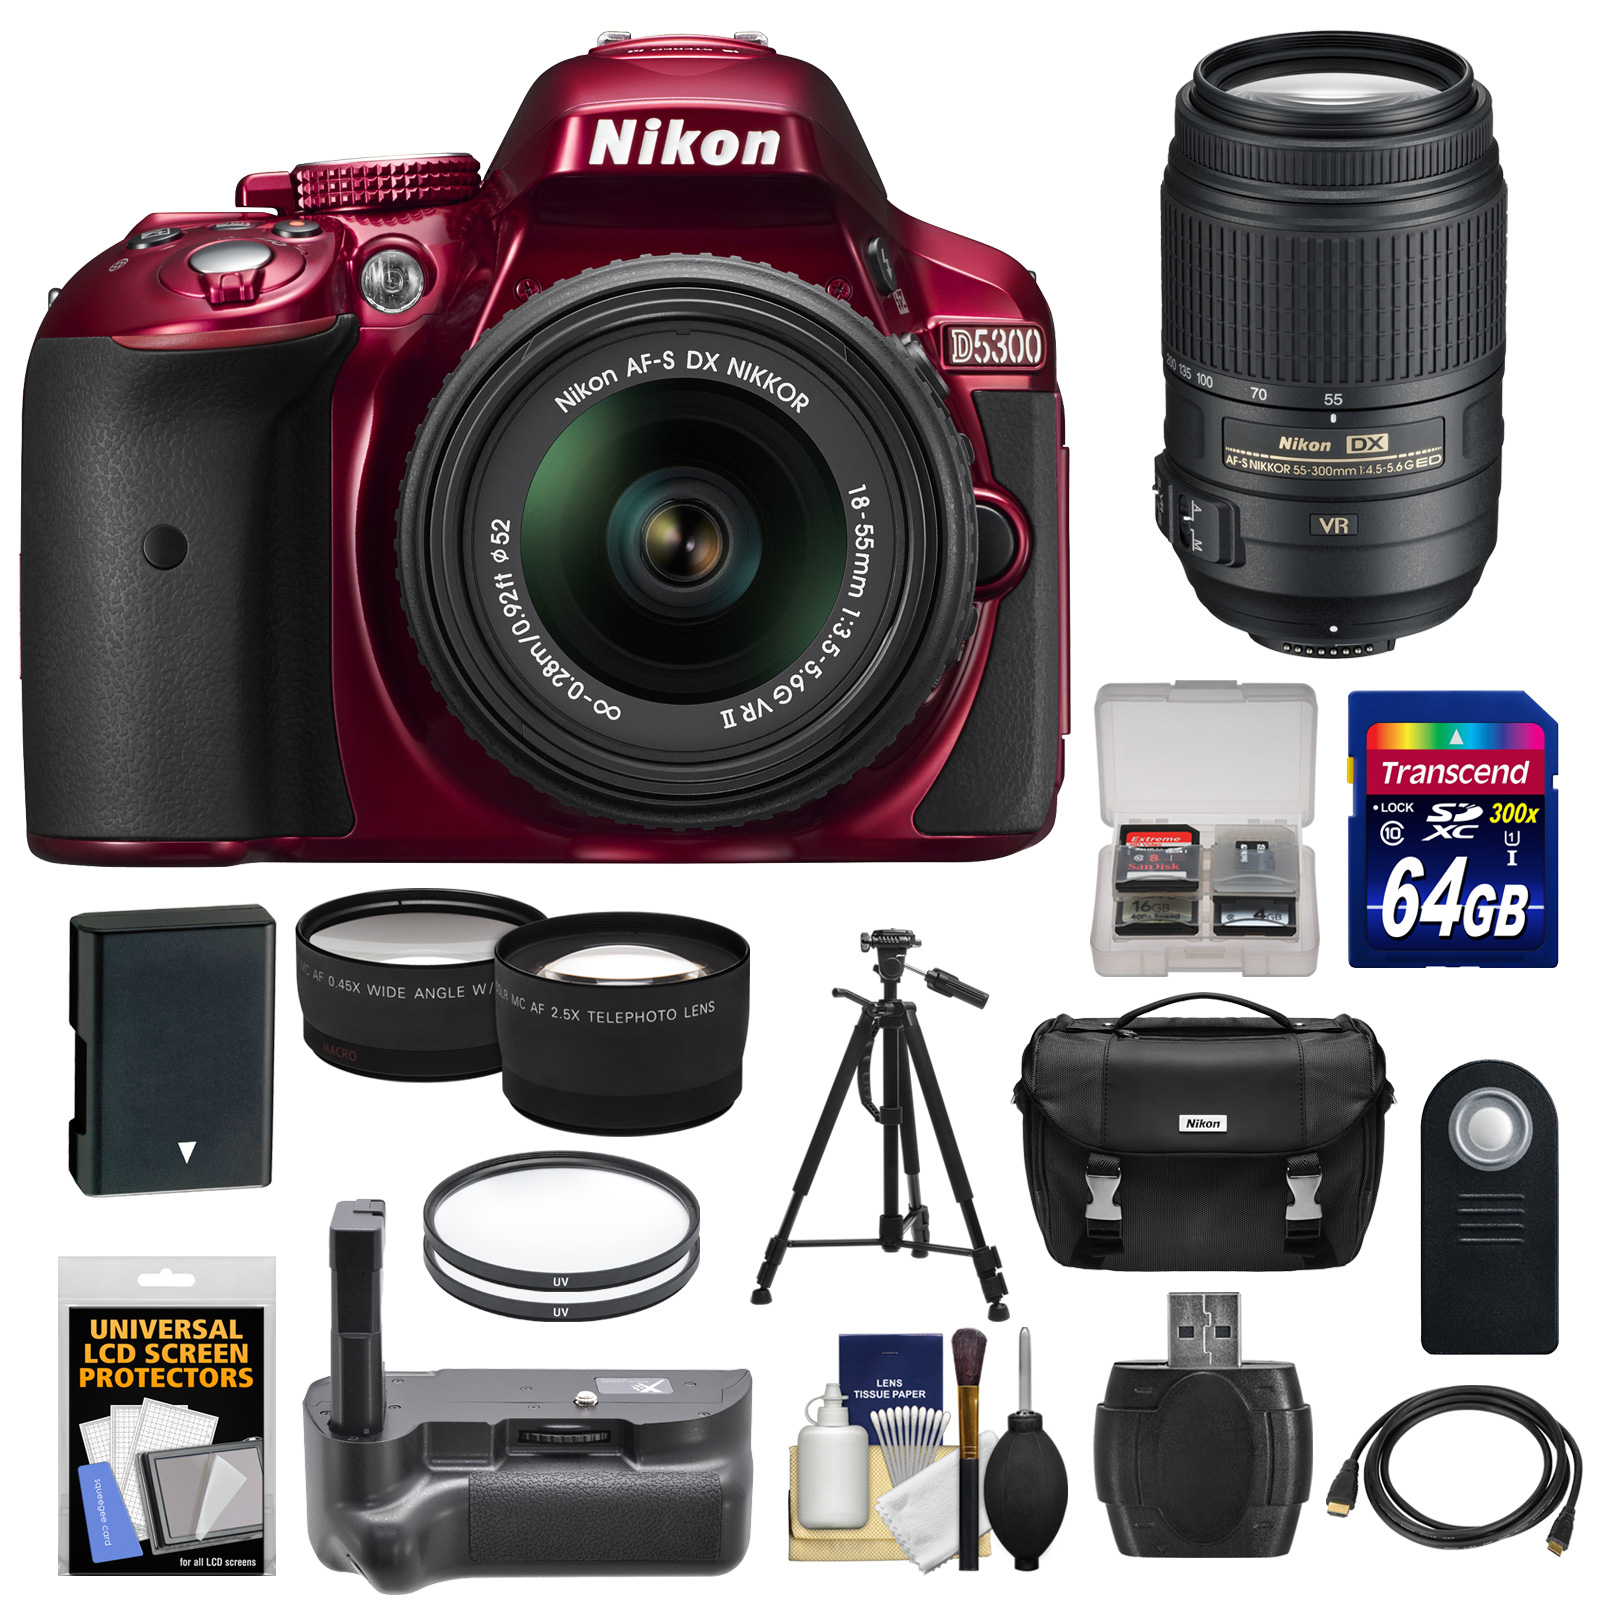 Nikon D5300 Digital SLR Camera & 18-55mm G VR DX II Lens (Red) with 55-300mm VR Lens + 64GB Card + Battery + Case + Grip + Tele/Wide Lens Kit